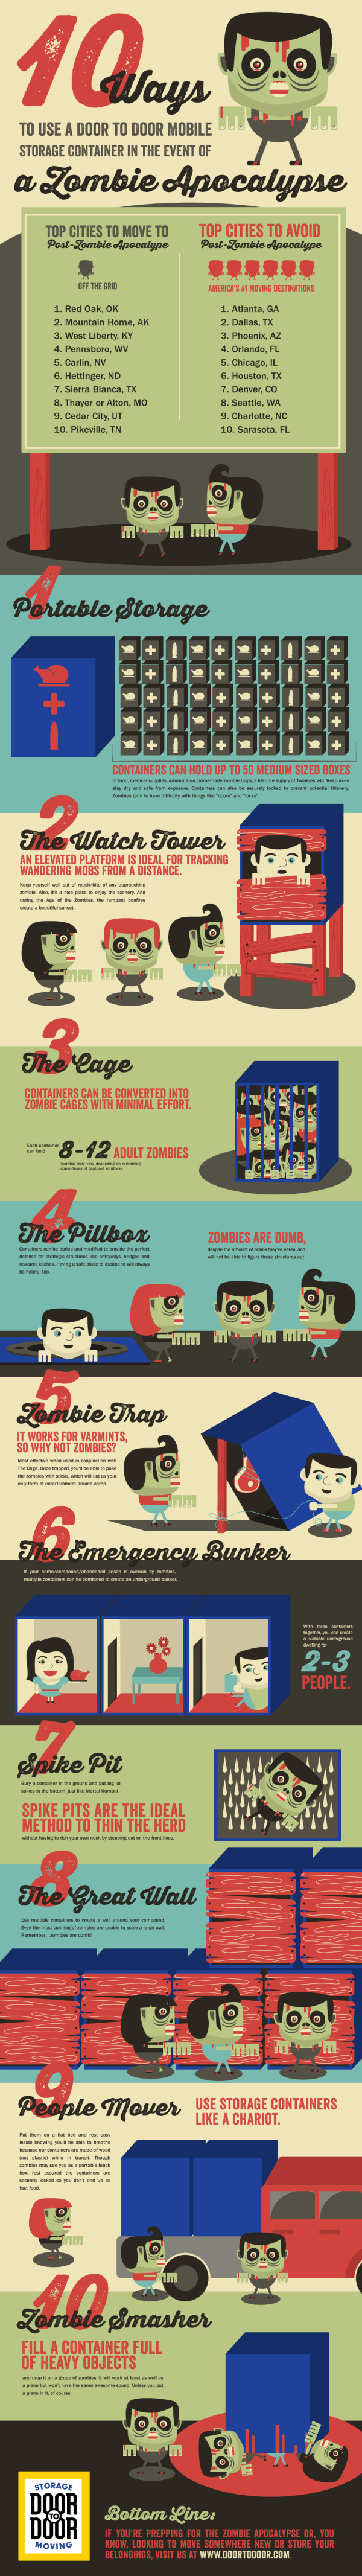 Zombies vs. Mobile Storage Containers infographic